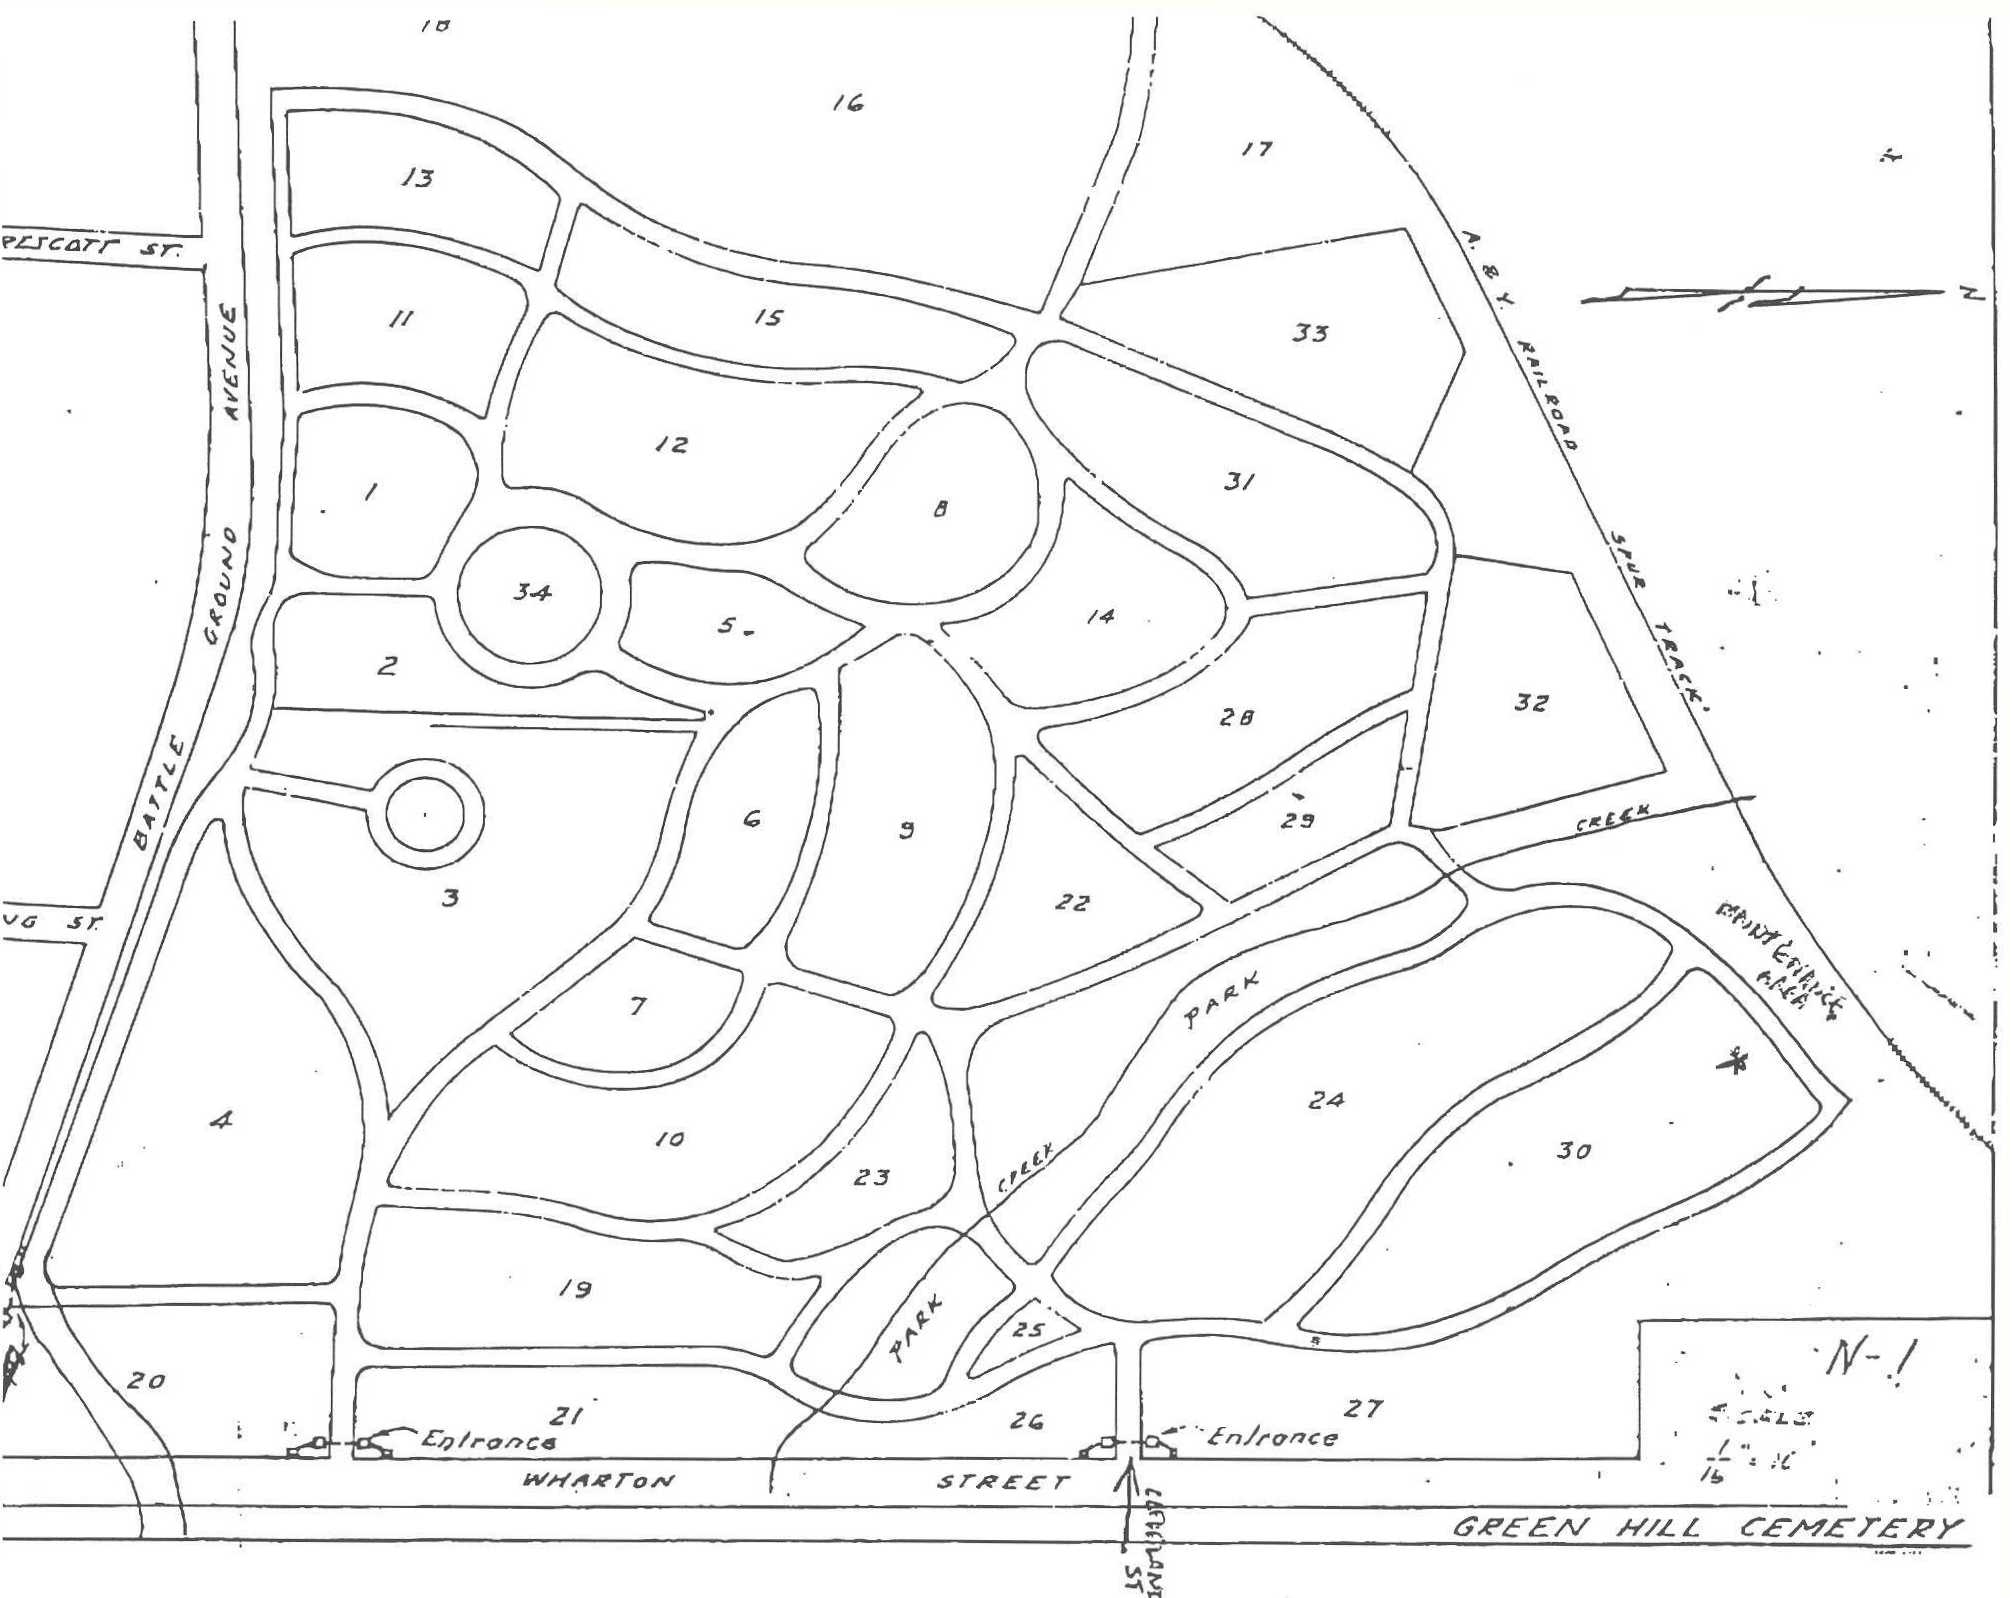 Green Hill Cemetery Map